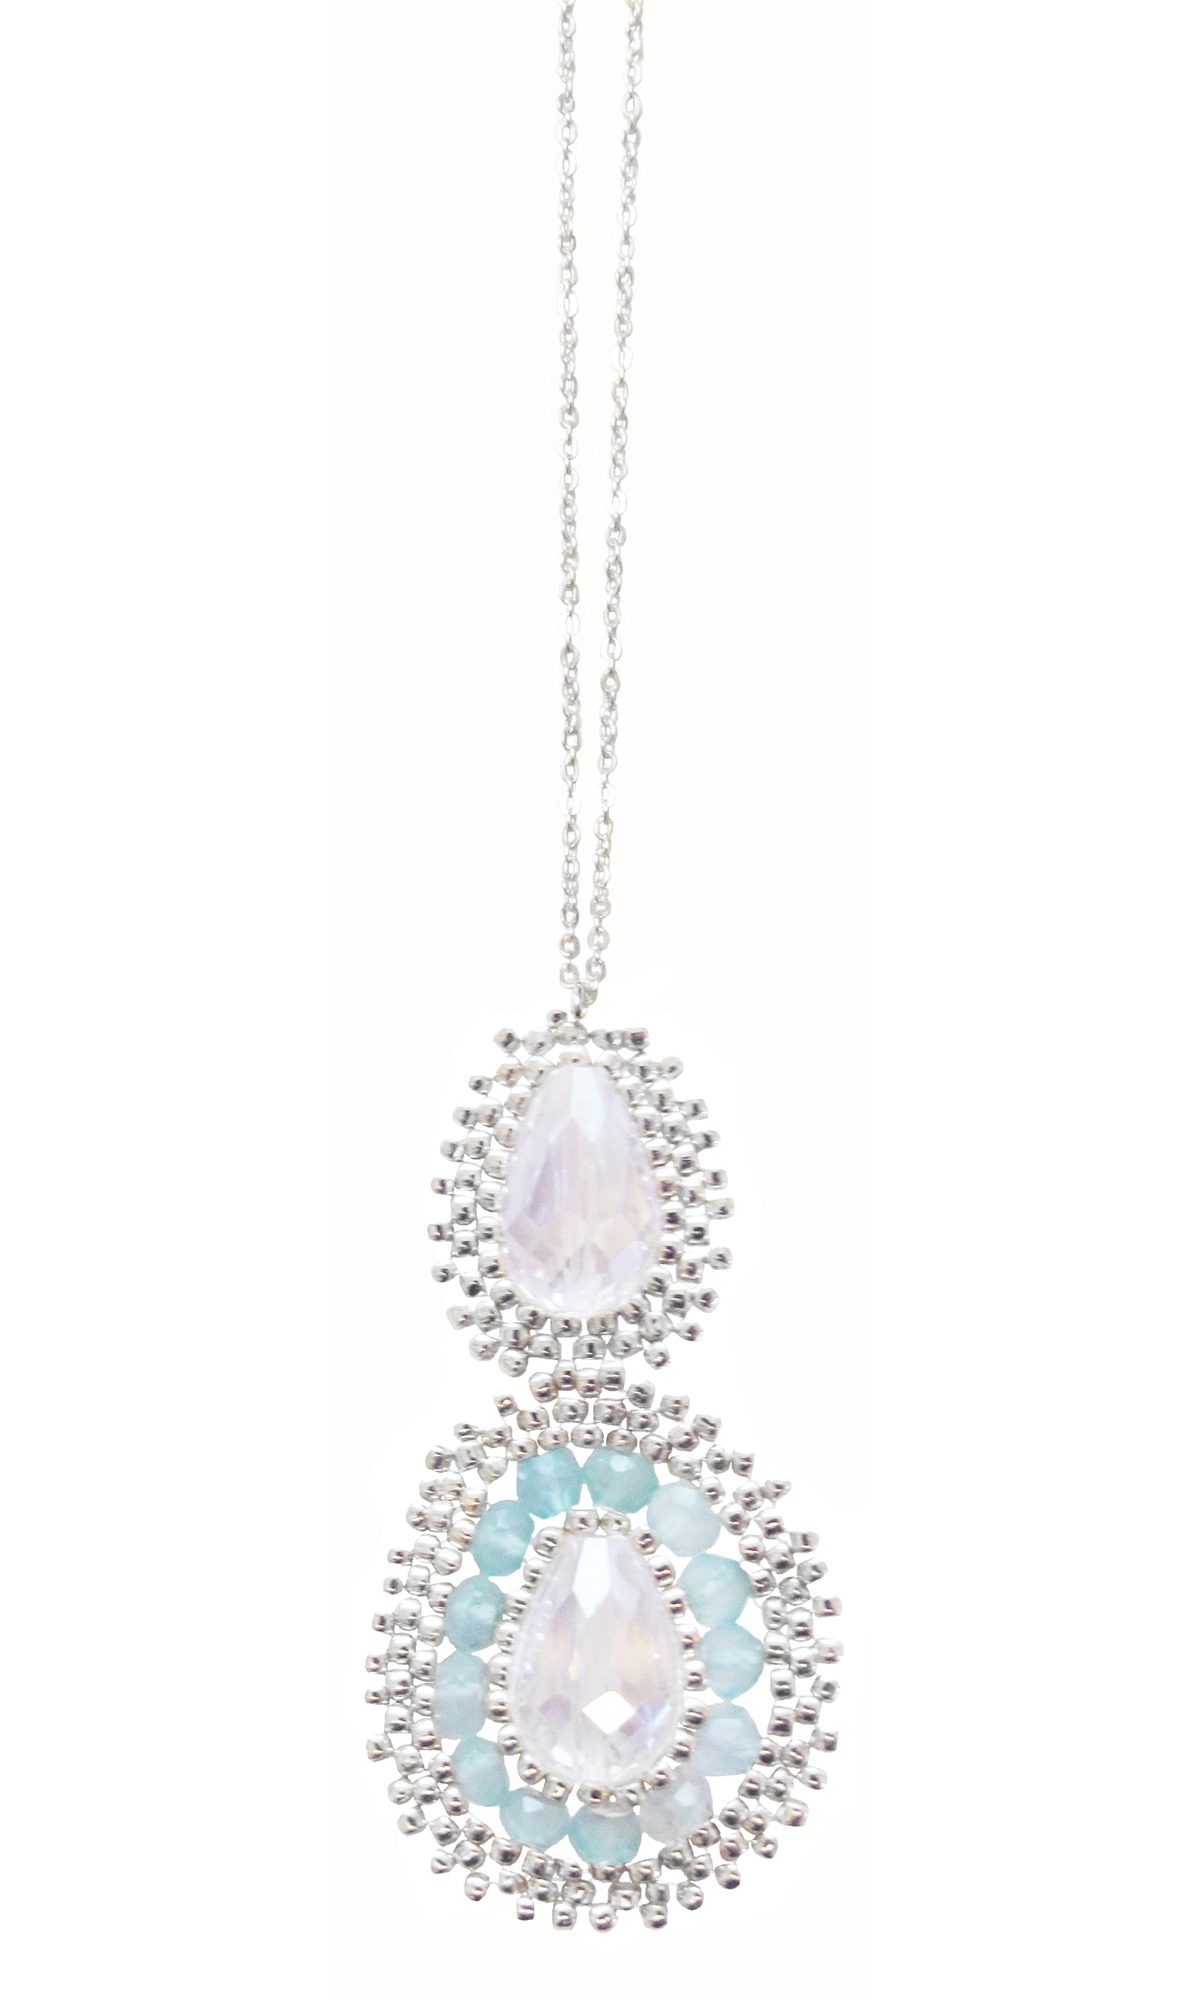 SILVER, AQUA CHALCEDONY AND CRYSTAL MEDALLION DAINTY NECKLACE